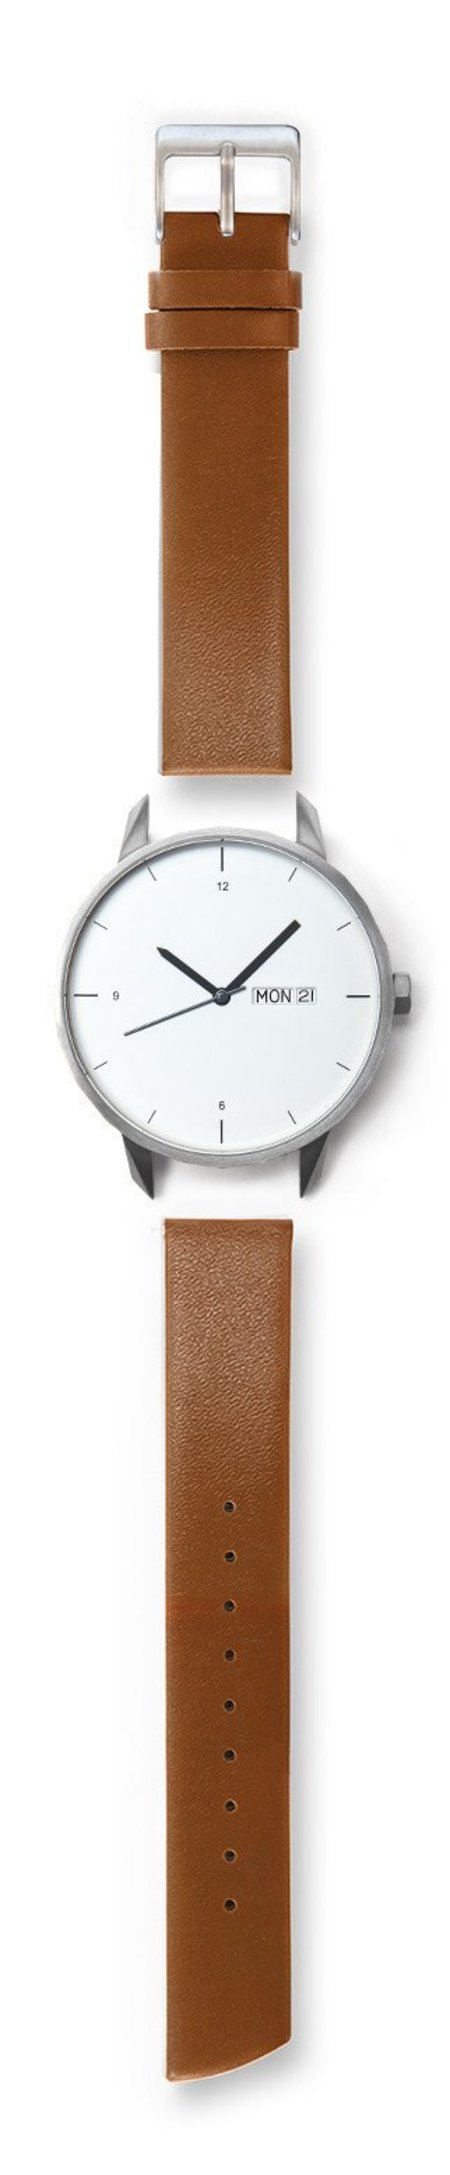 Tinker Watches 42mm Silver Watch Camel Strap